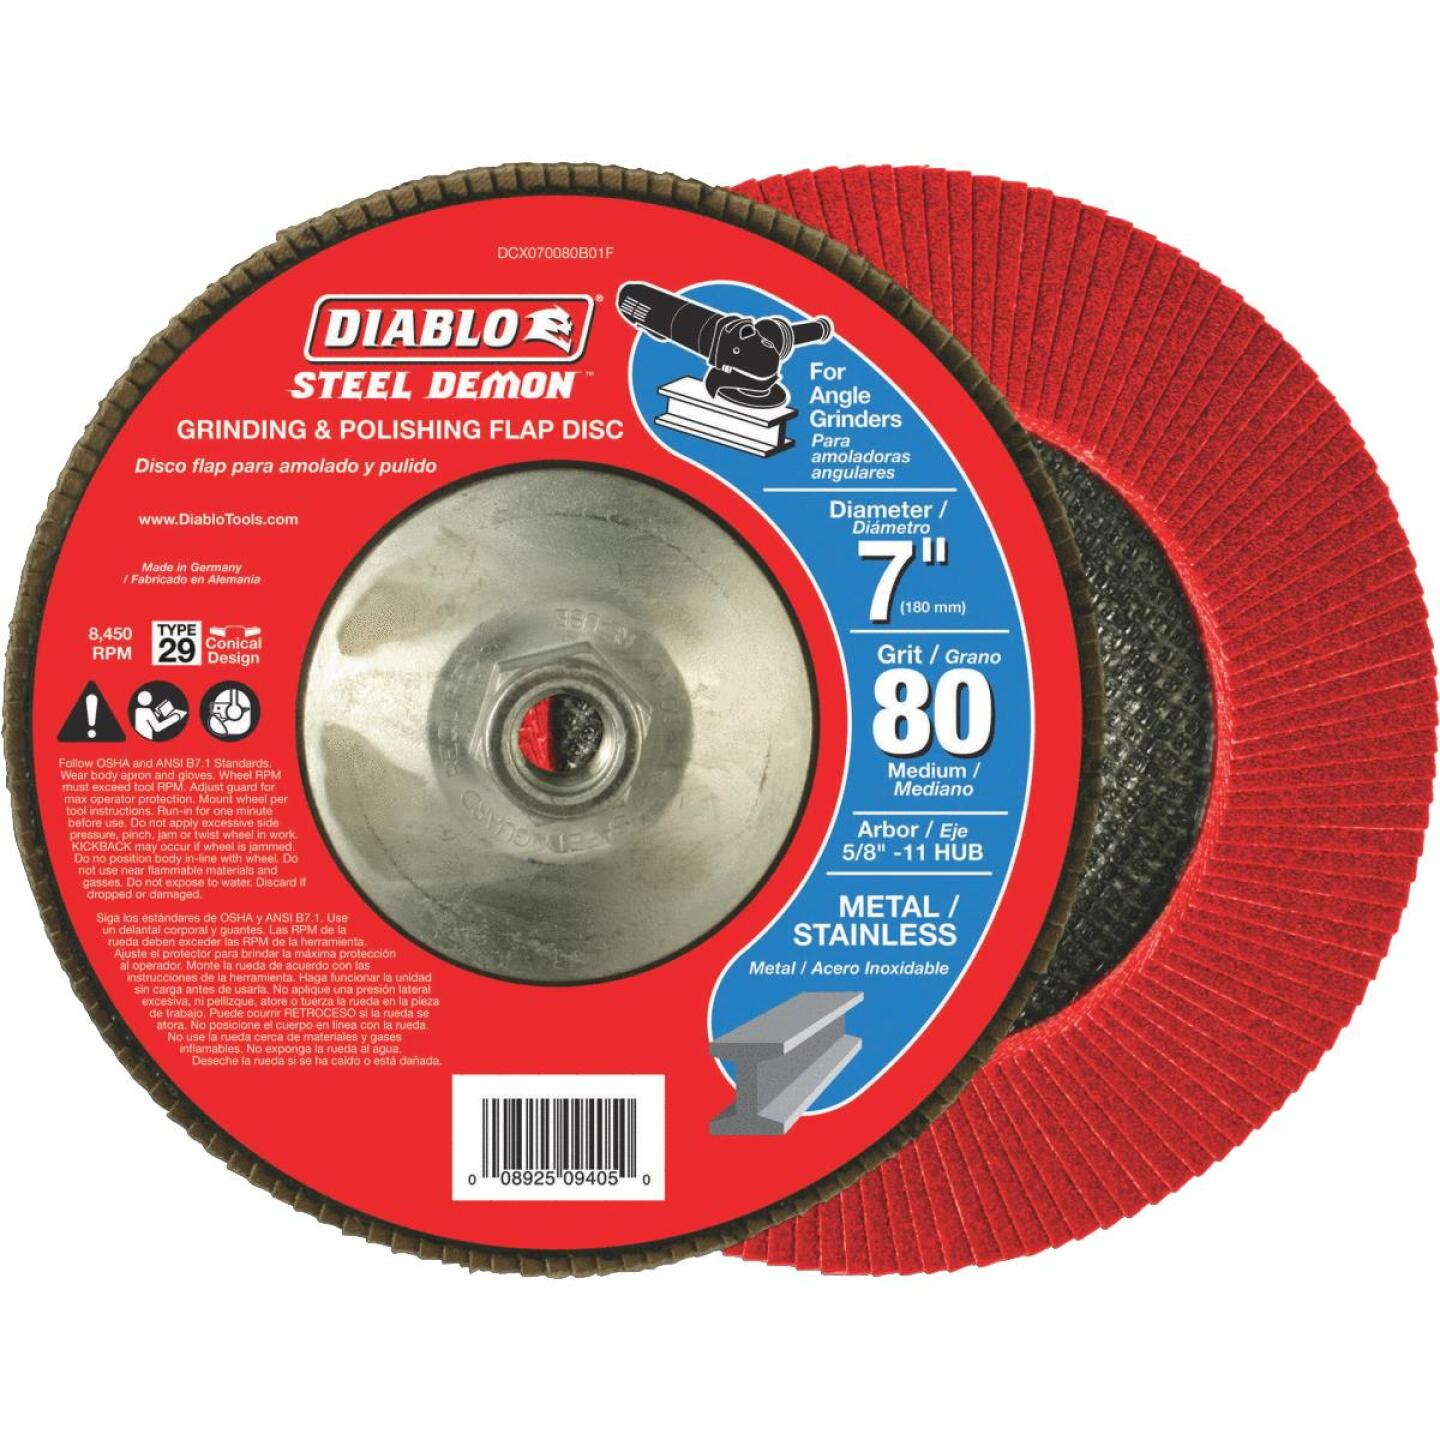 Diablo 7 In. x 5/8 In.-11 80-Grit Type 29 Steel Demon Angle Grinder Flap Disc with Hub Image 2